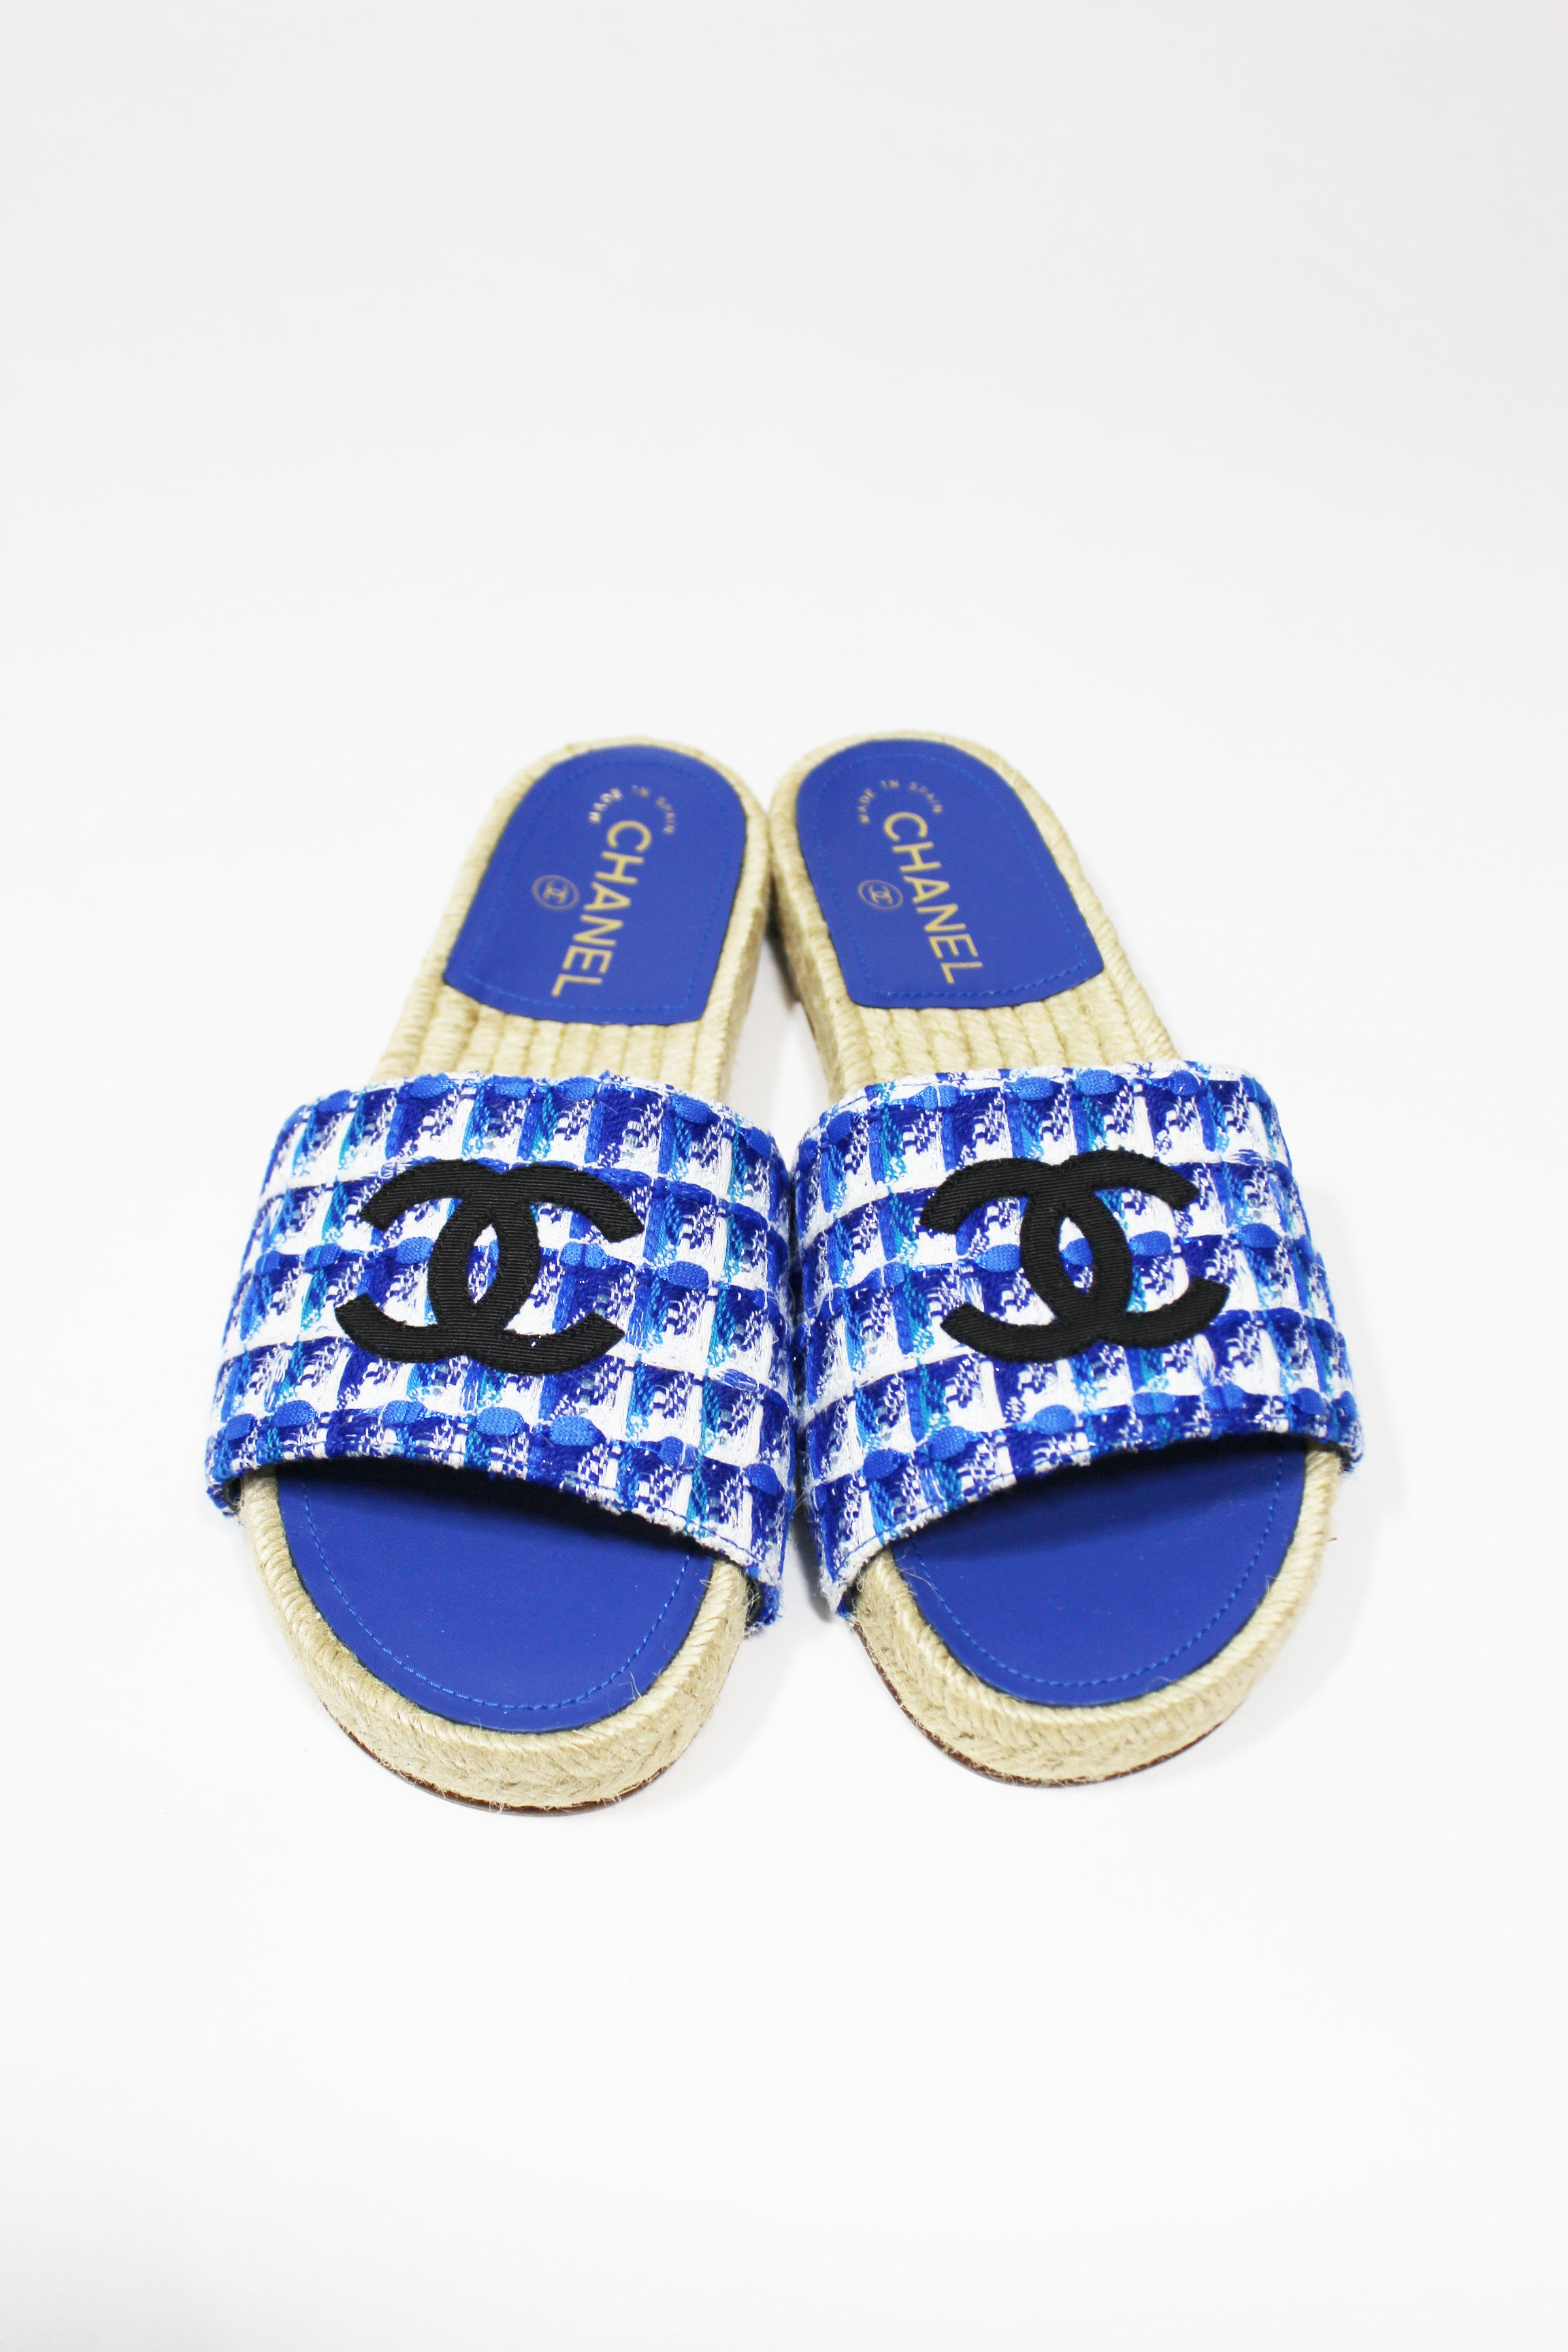 2018 CHANE Blue Tweed And Grosgrain Espadrille Black CC Mule Sandals 37